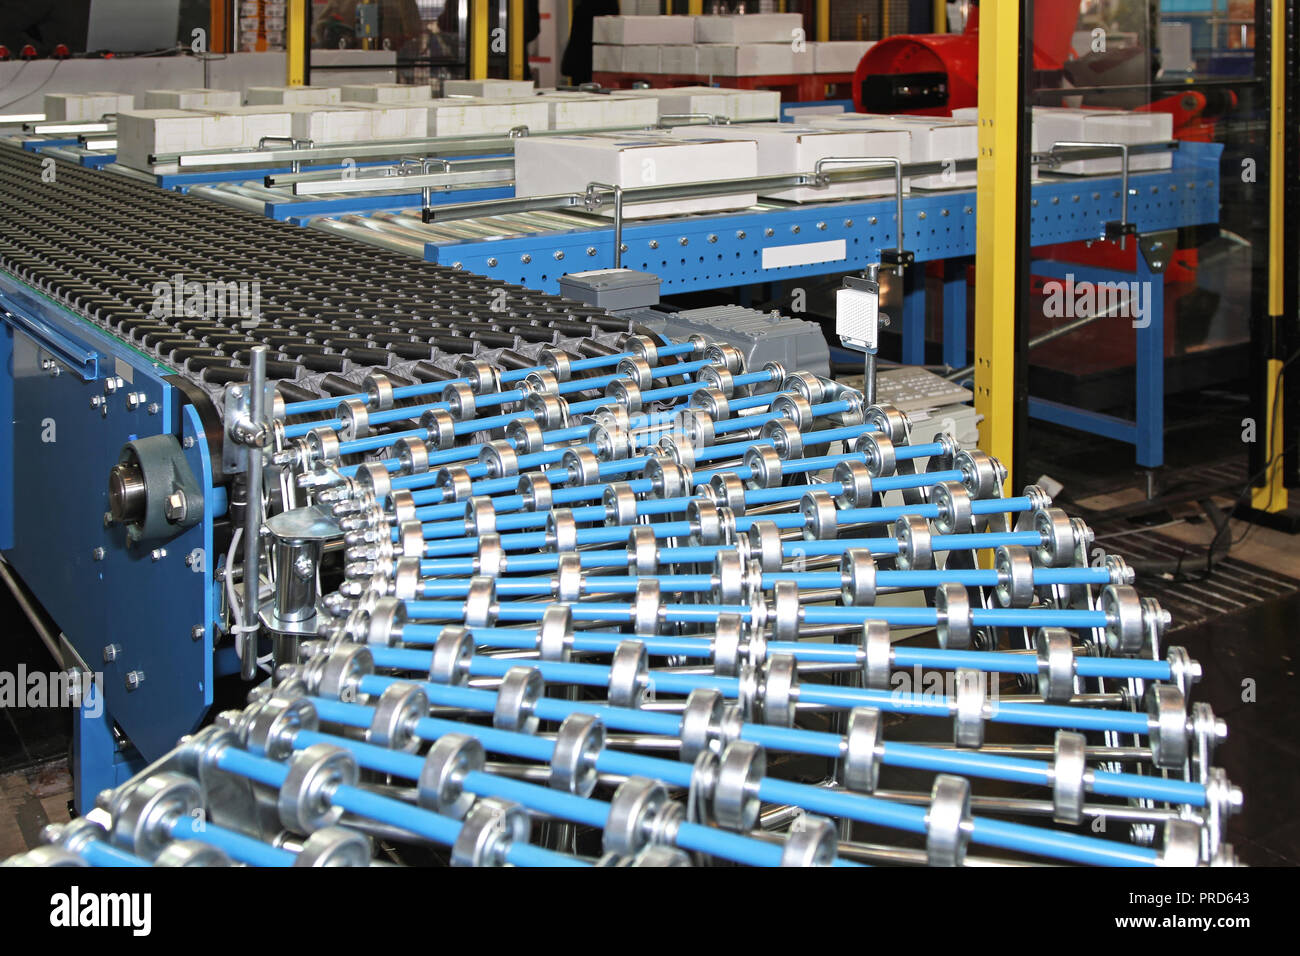 Flexible Conveyor Rollers at Box Packing Line in Factory Stock Photo